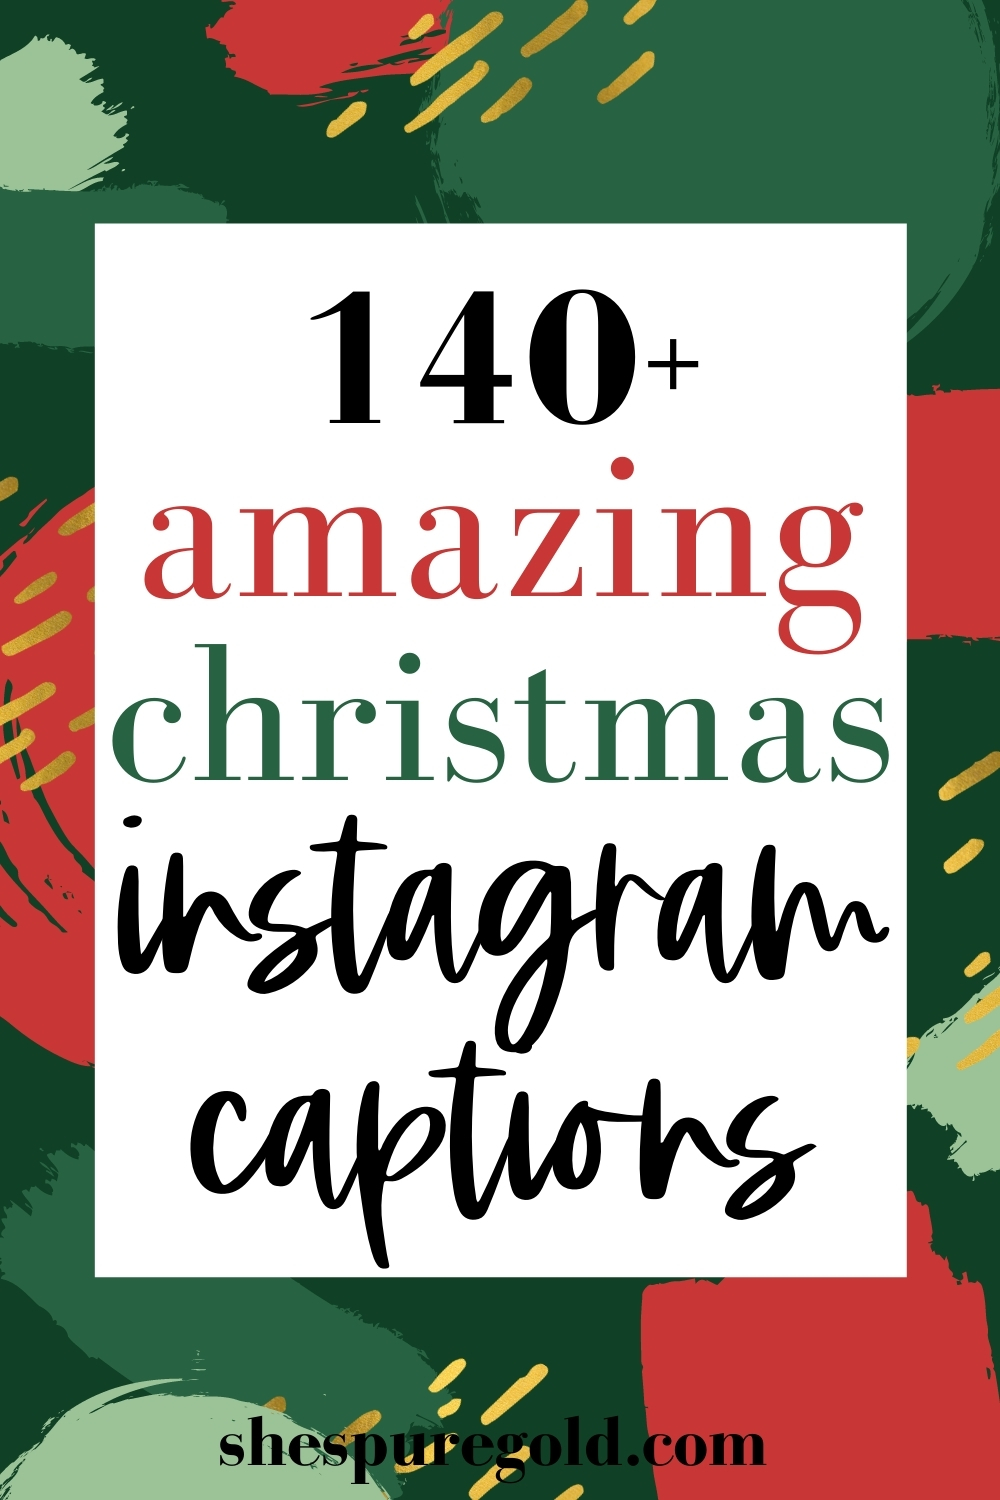 140 Christmas Captions for Creatives